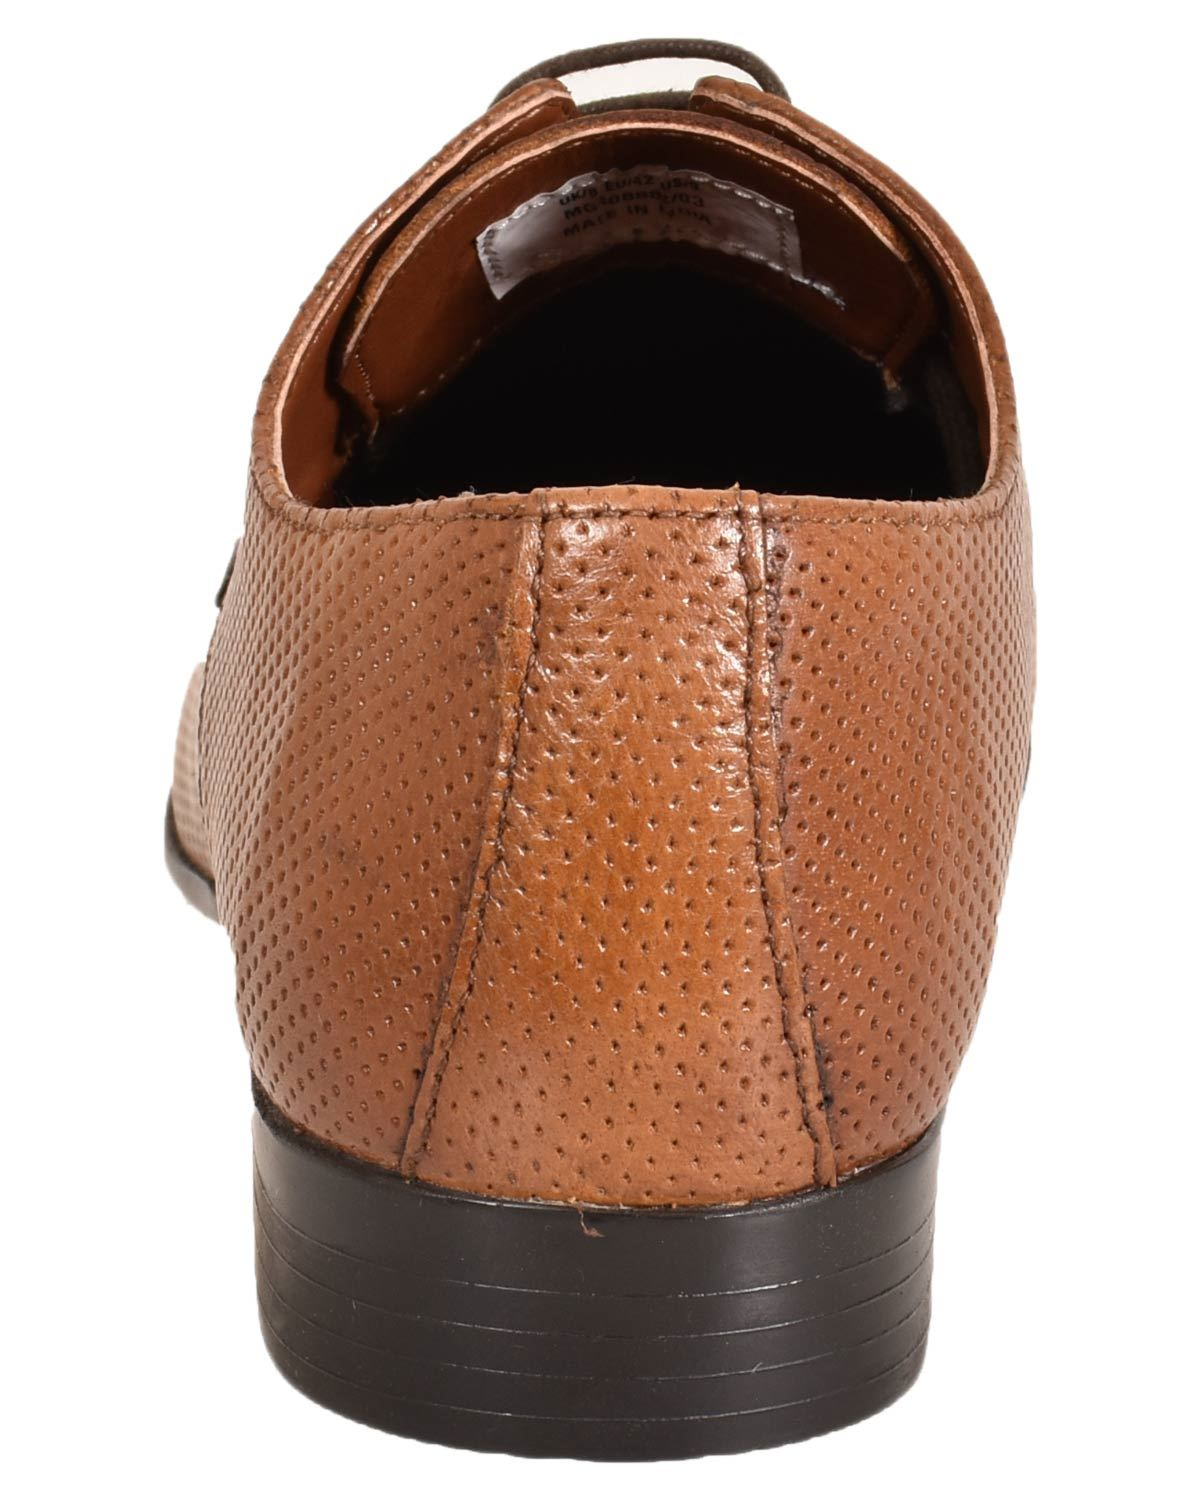 Mens-UK-Style-Leather-Lining-Formal-Office-Wedding-Smart-Work-Brogue-Shoes thumbnail 13